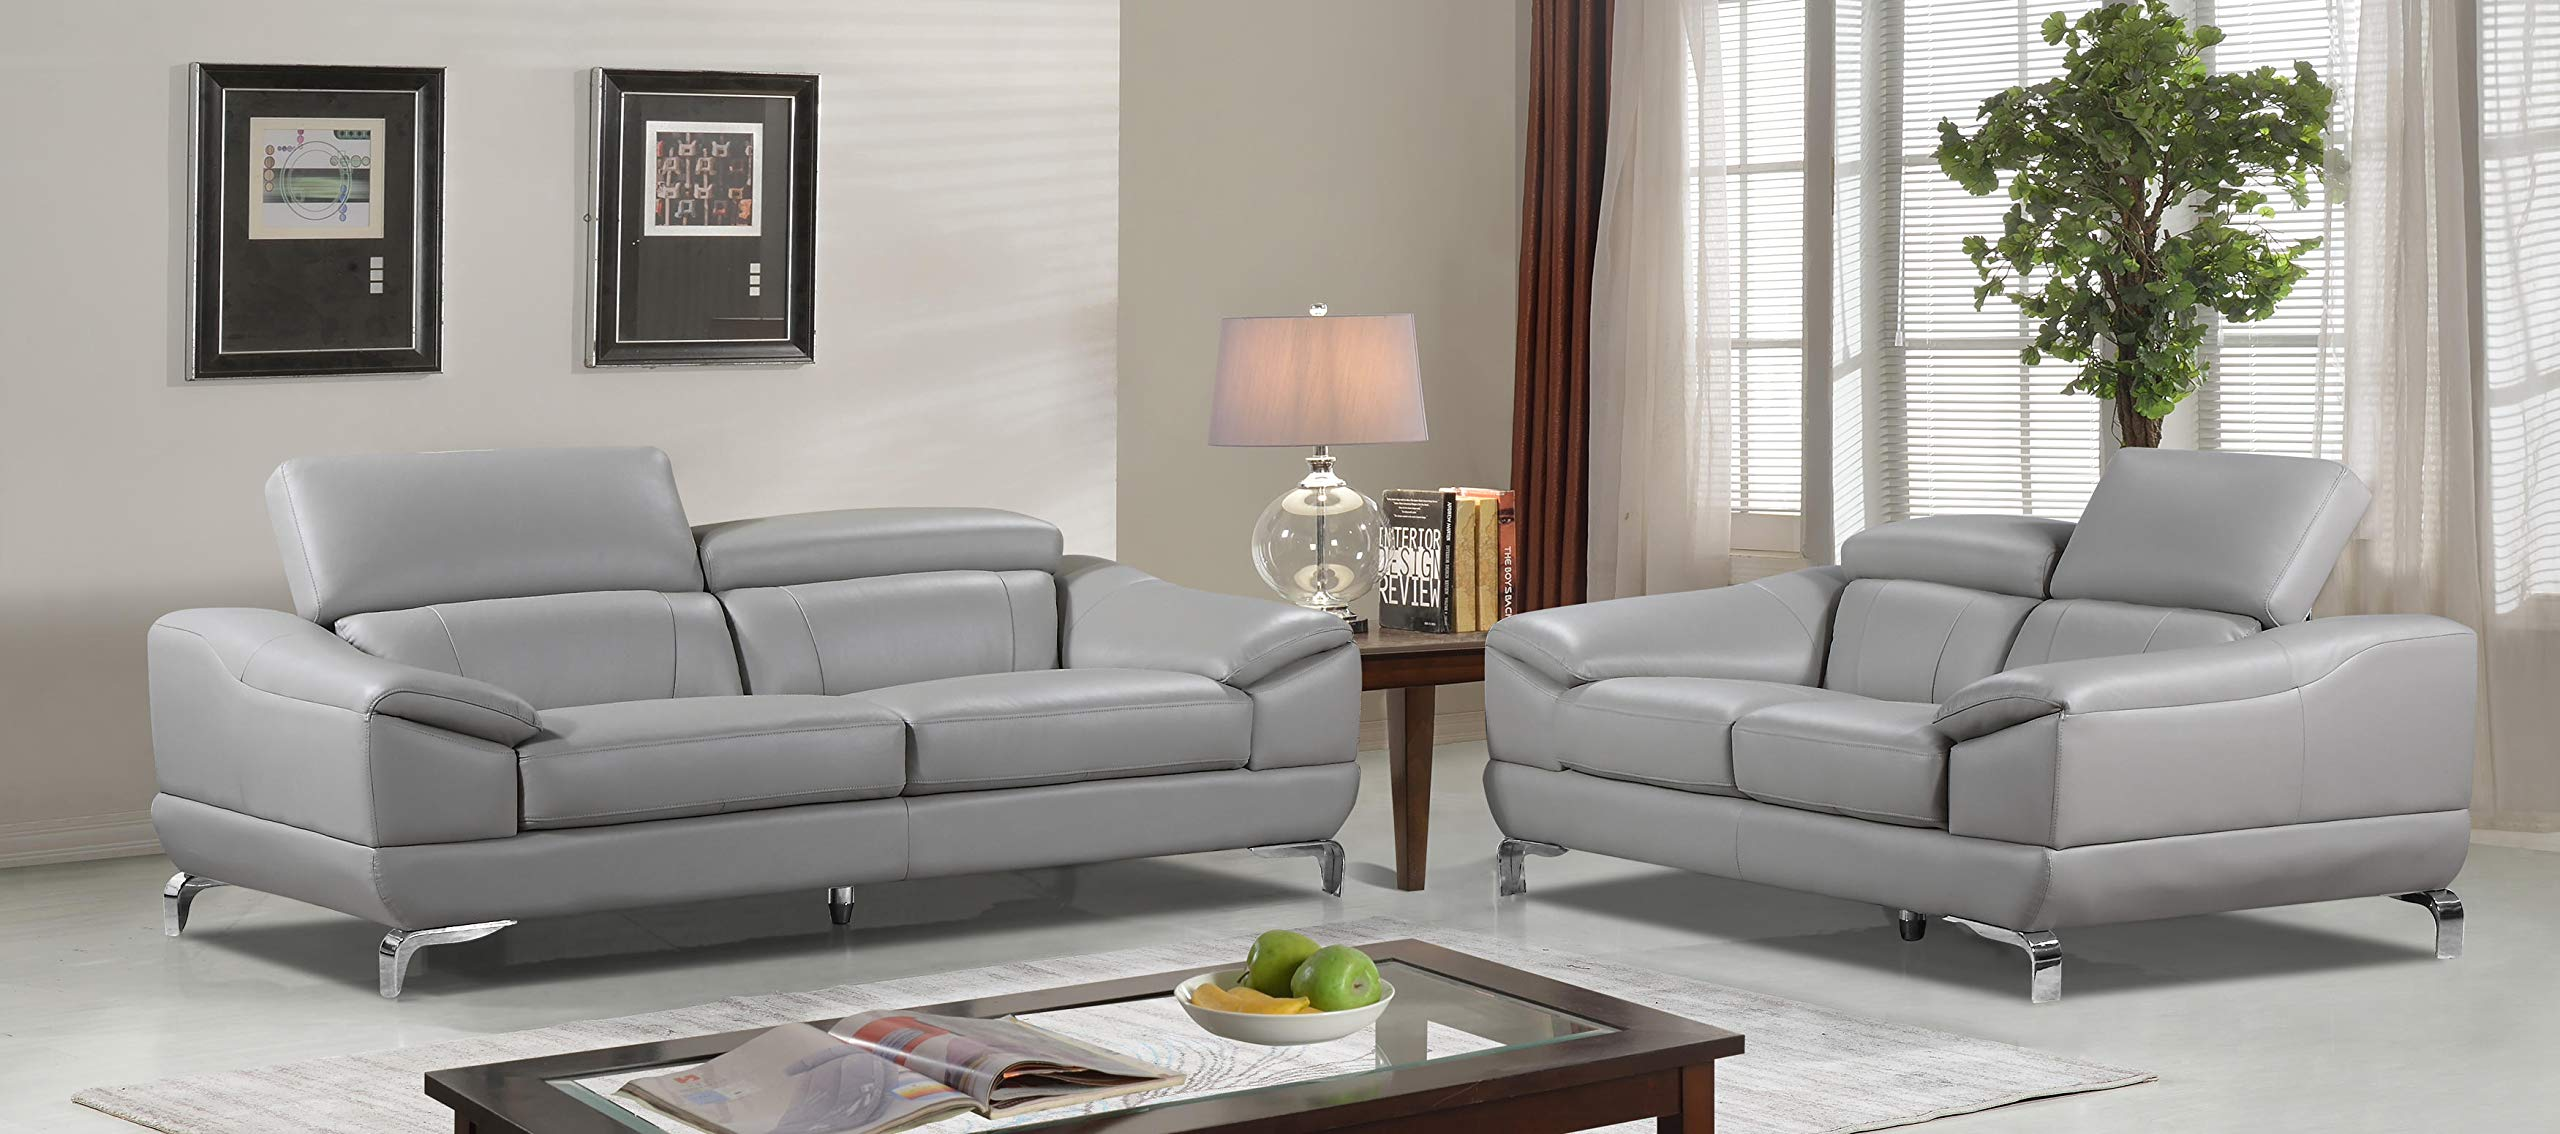 Cortesi Home Vegas Genuine Leather Sofa & Loveseat Set with Adjustable Headrests, Grey by Cortesi Home